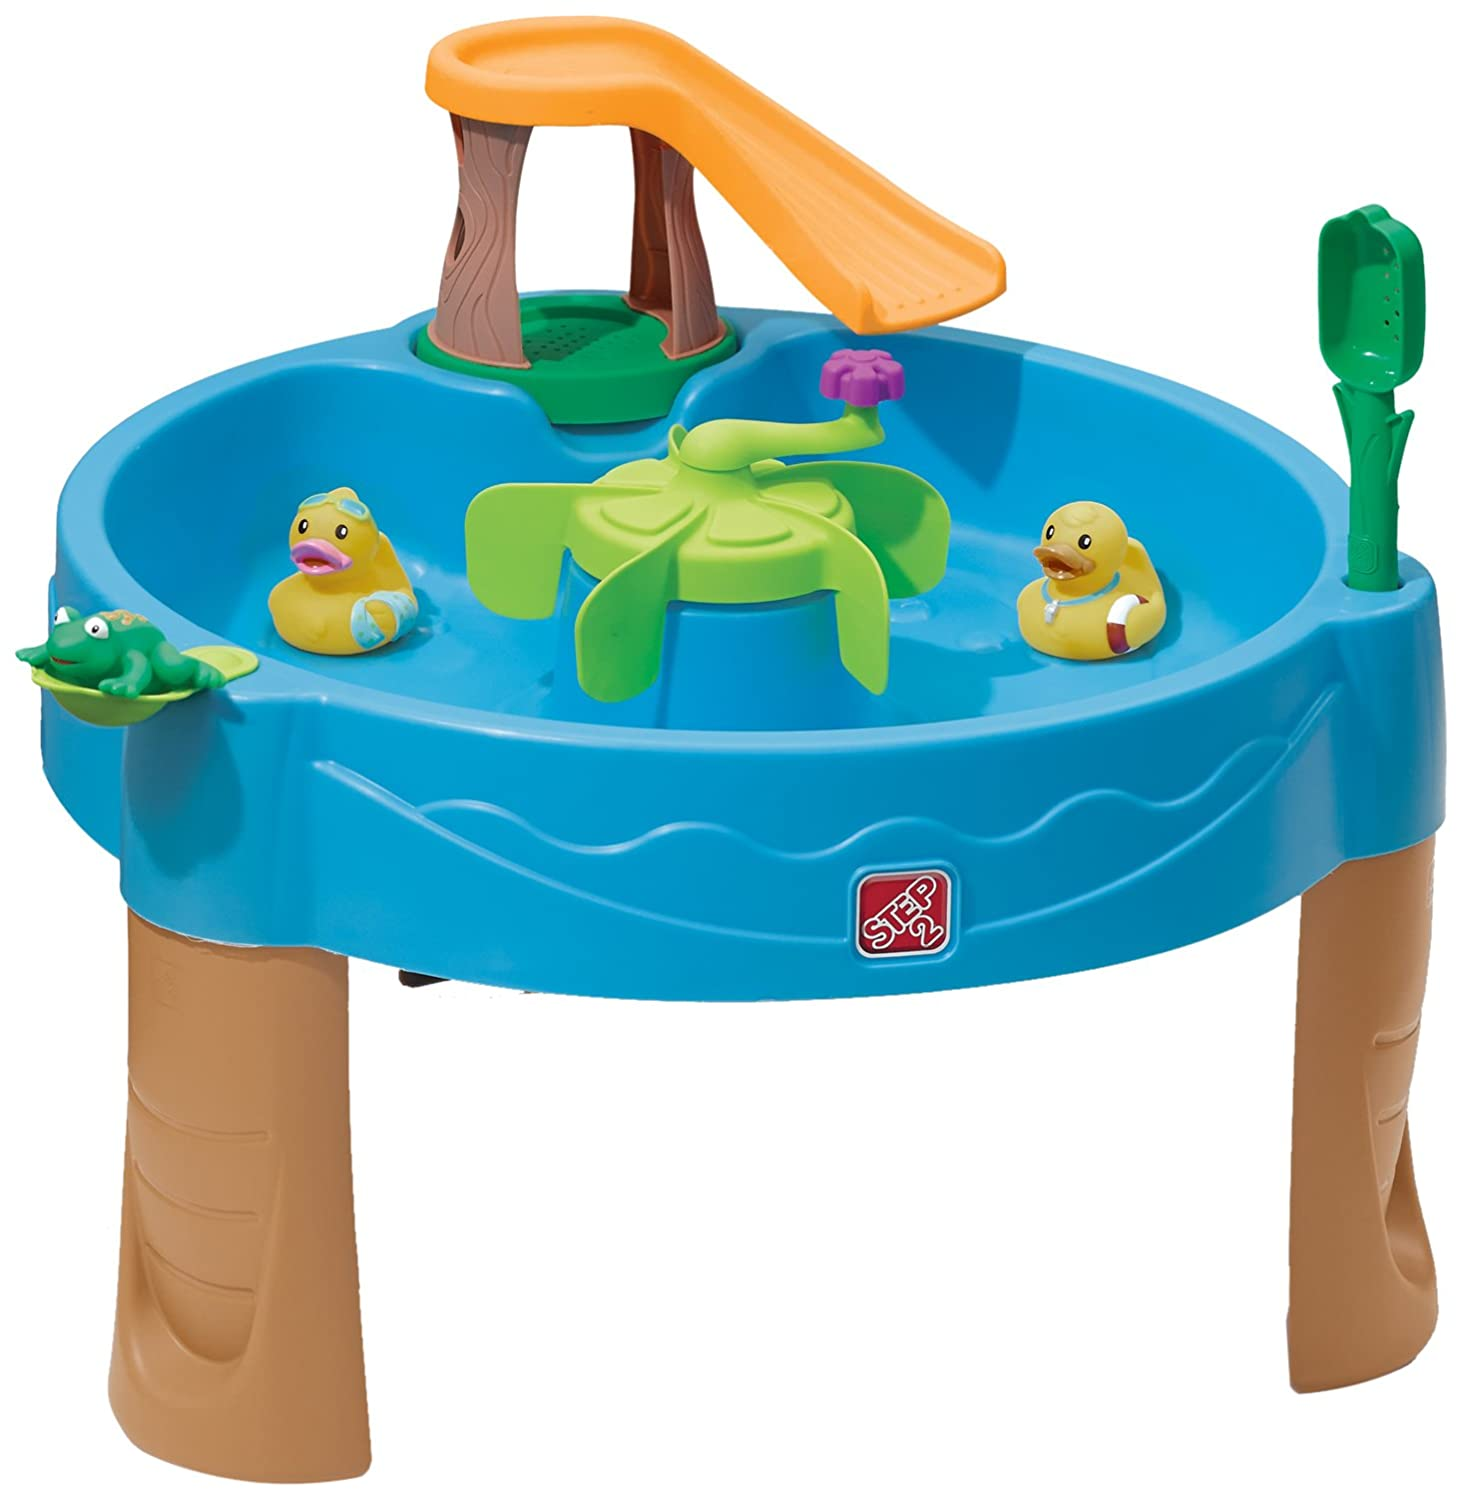 Outdoor Water Toys Product : Step kids water activity table toddler outdoor toys